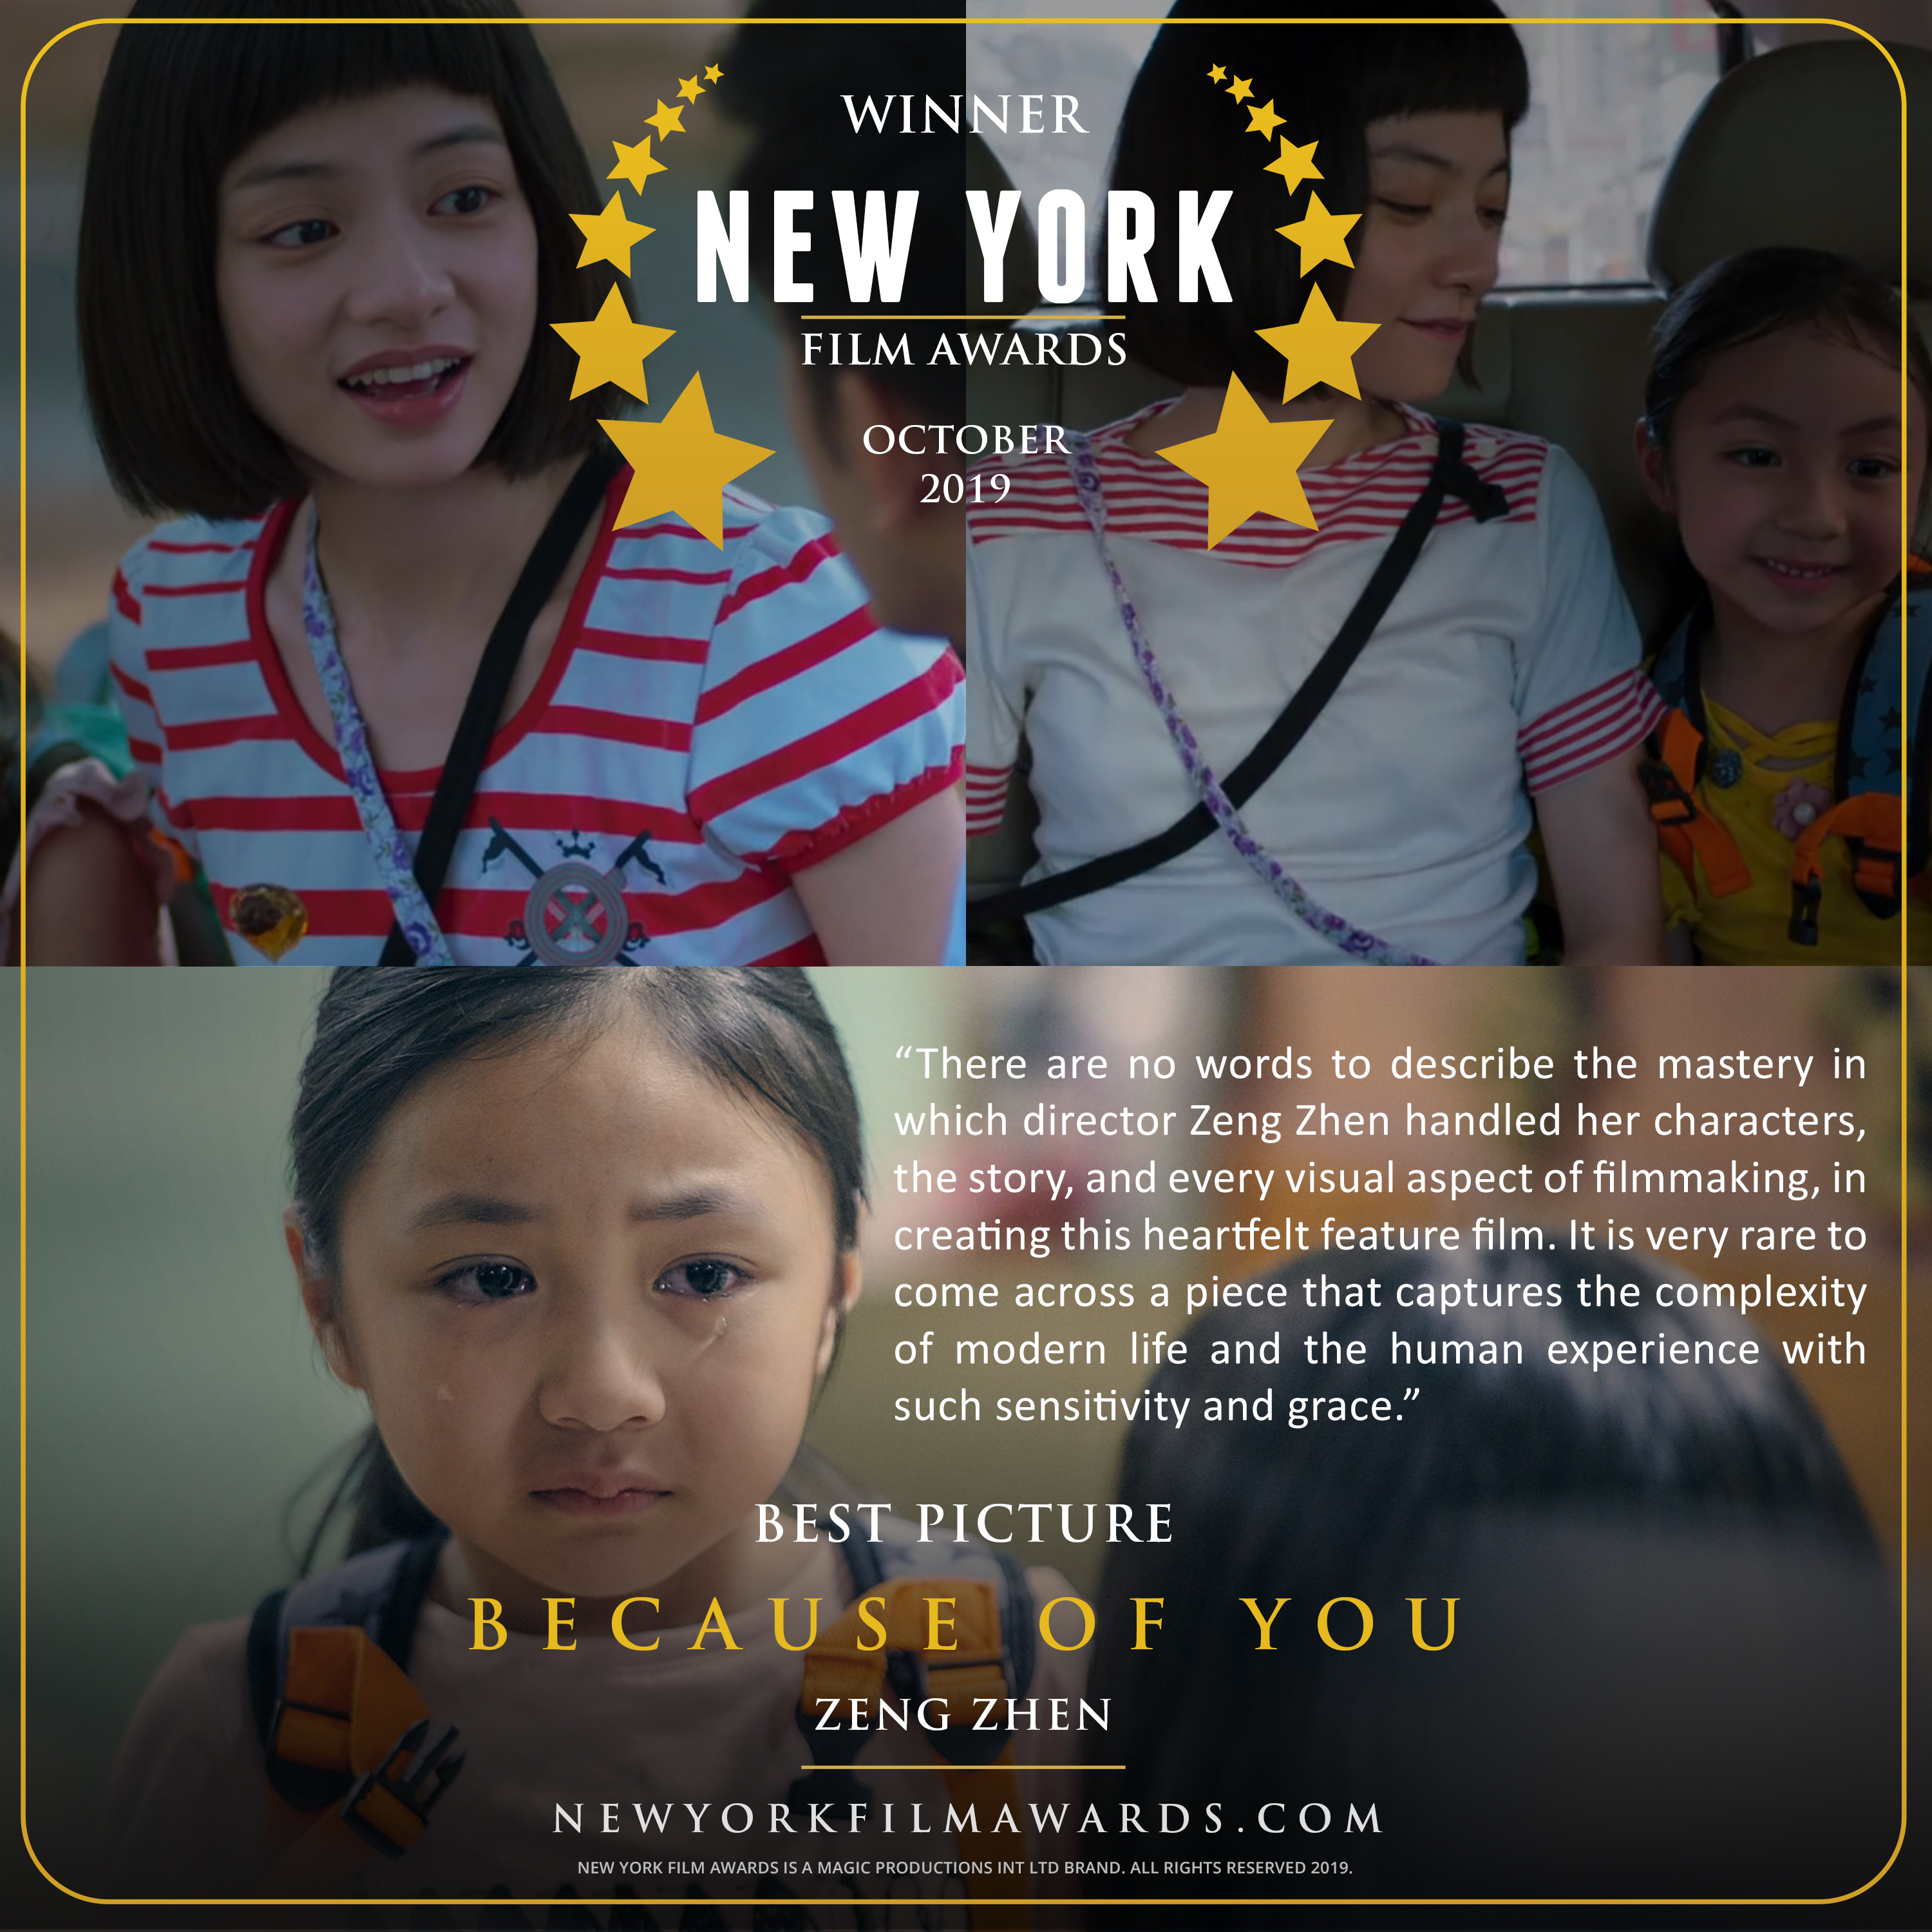 BECAUSE OF YOU review